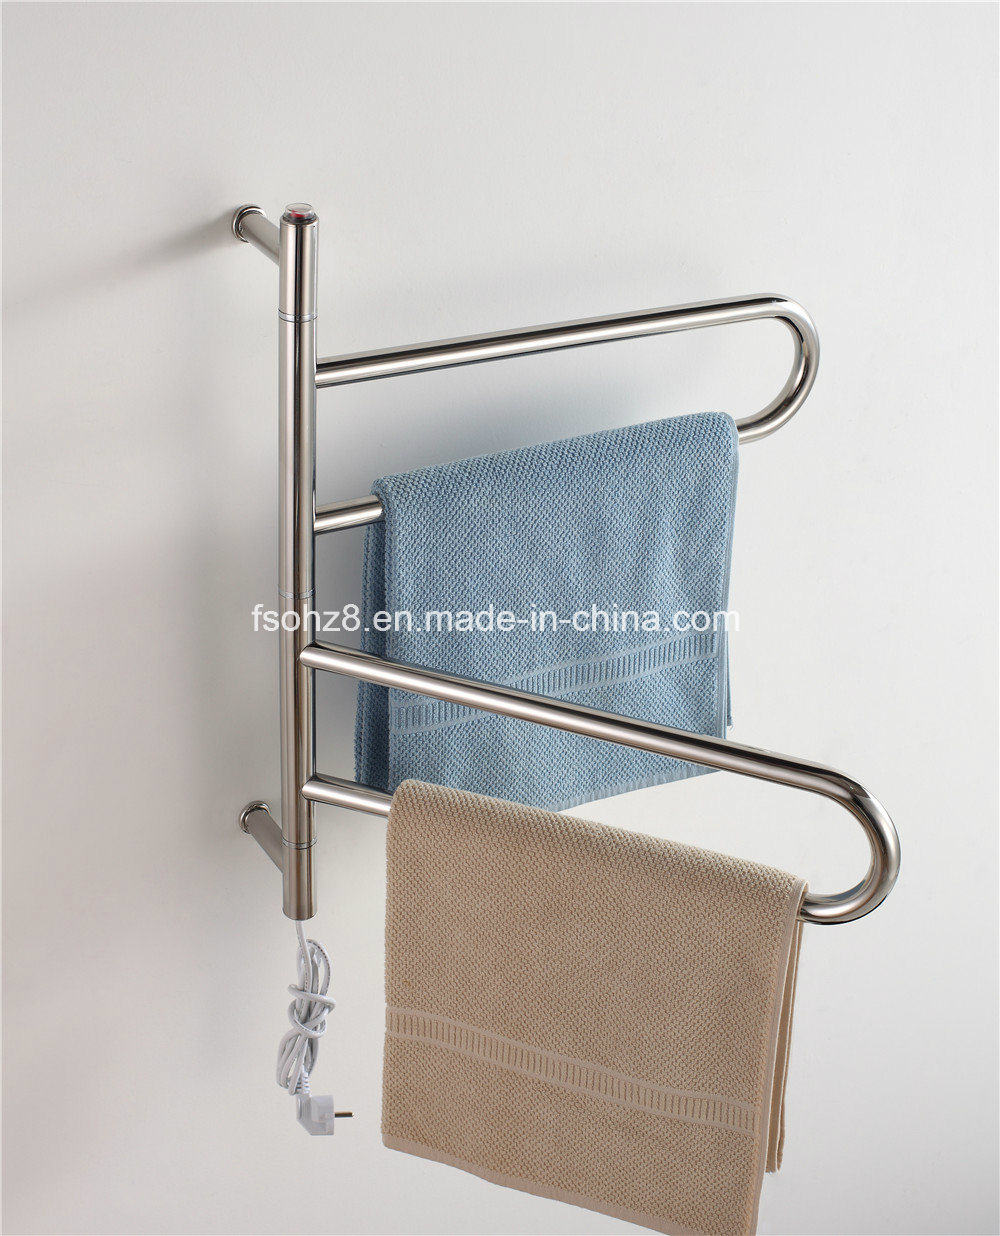 More Style Options Electric Removable Towel Warmer Rack for Hotel